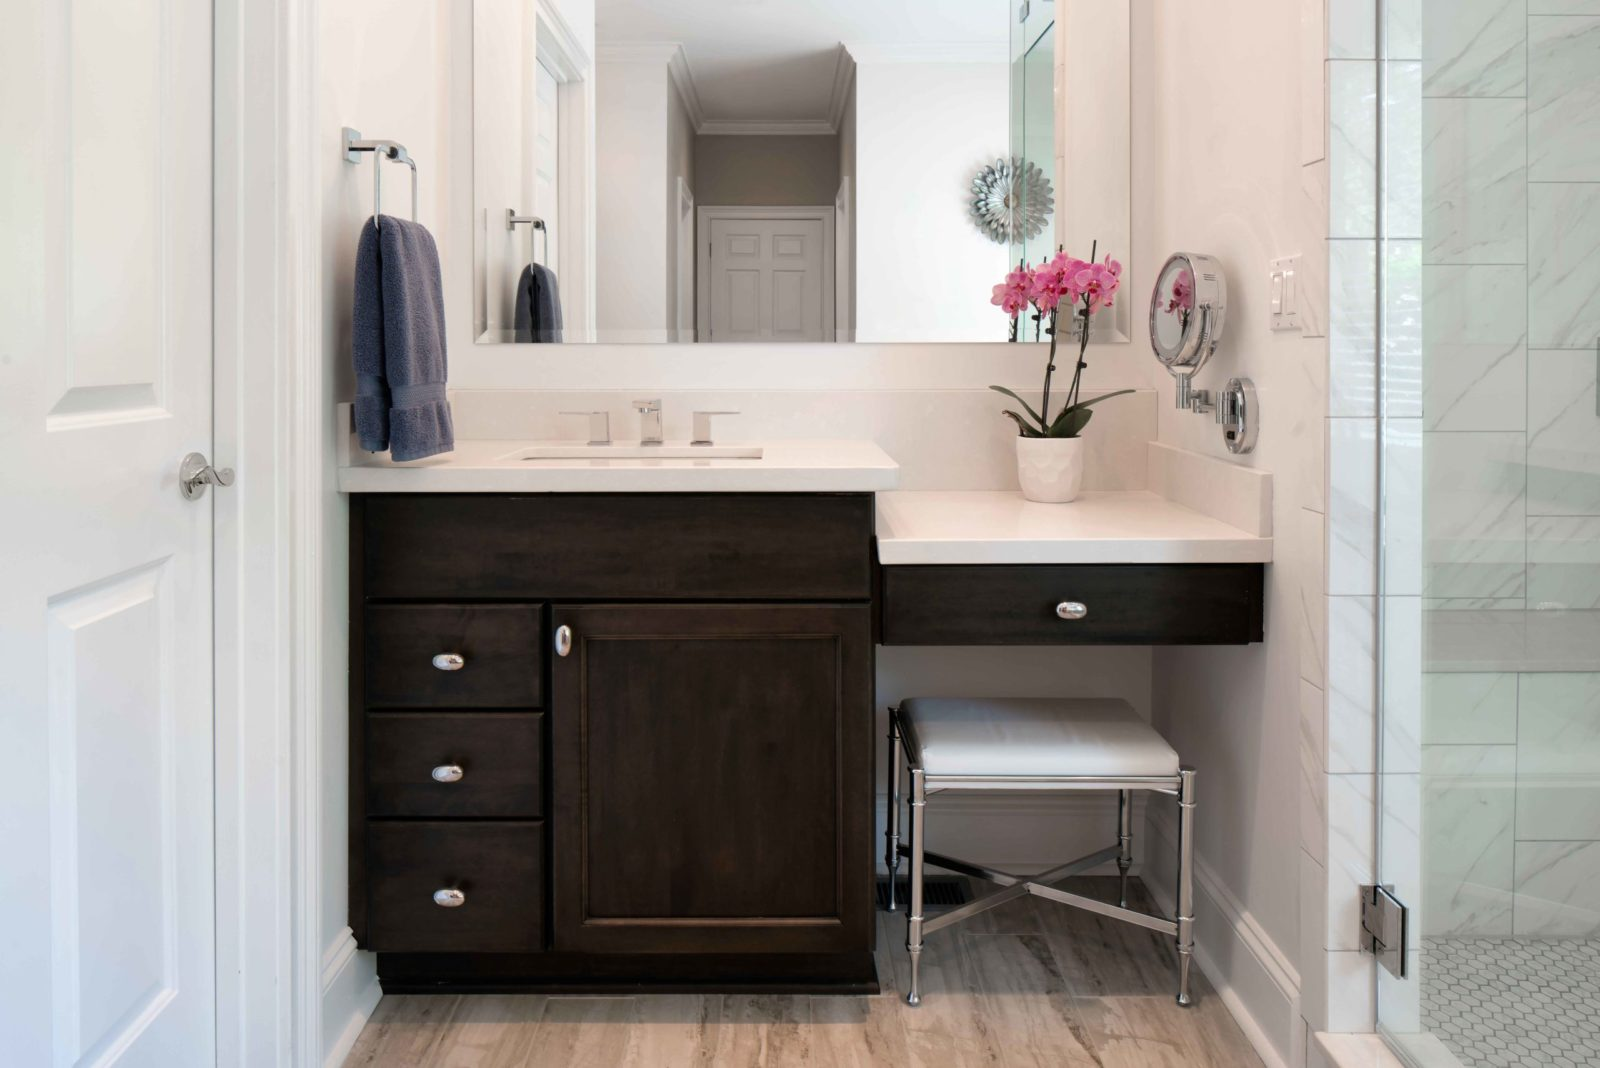 bath-remodel-revision-design-spa-bath-vanity